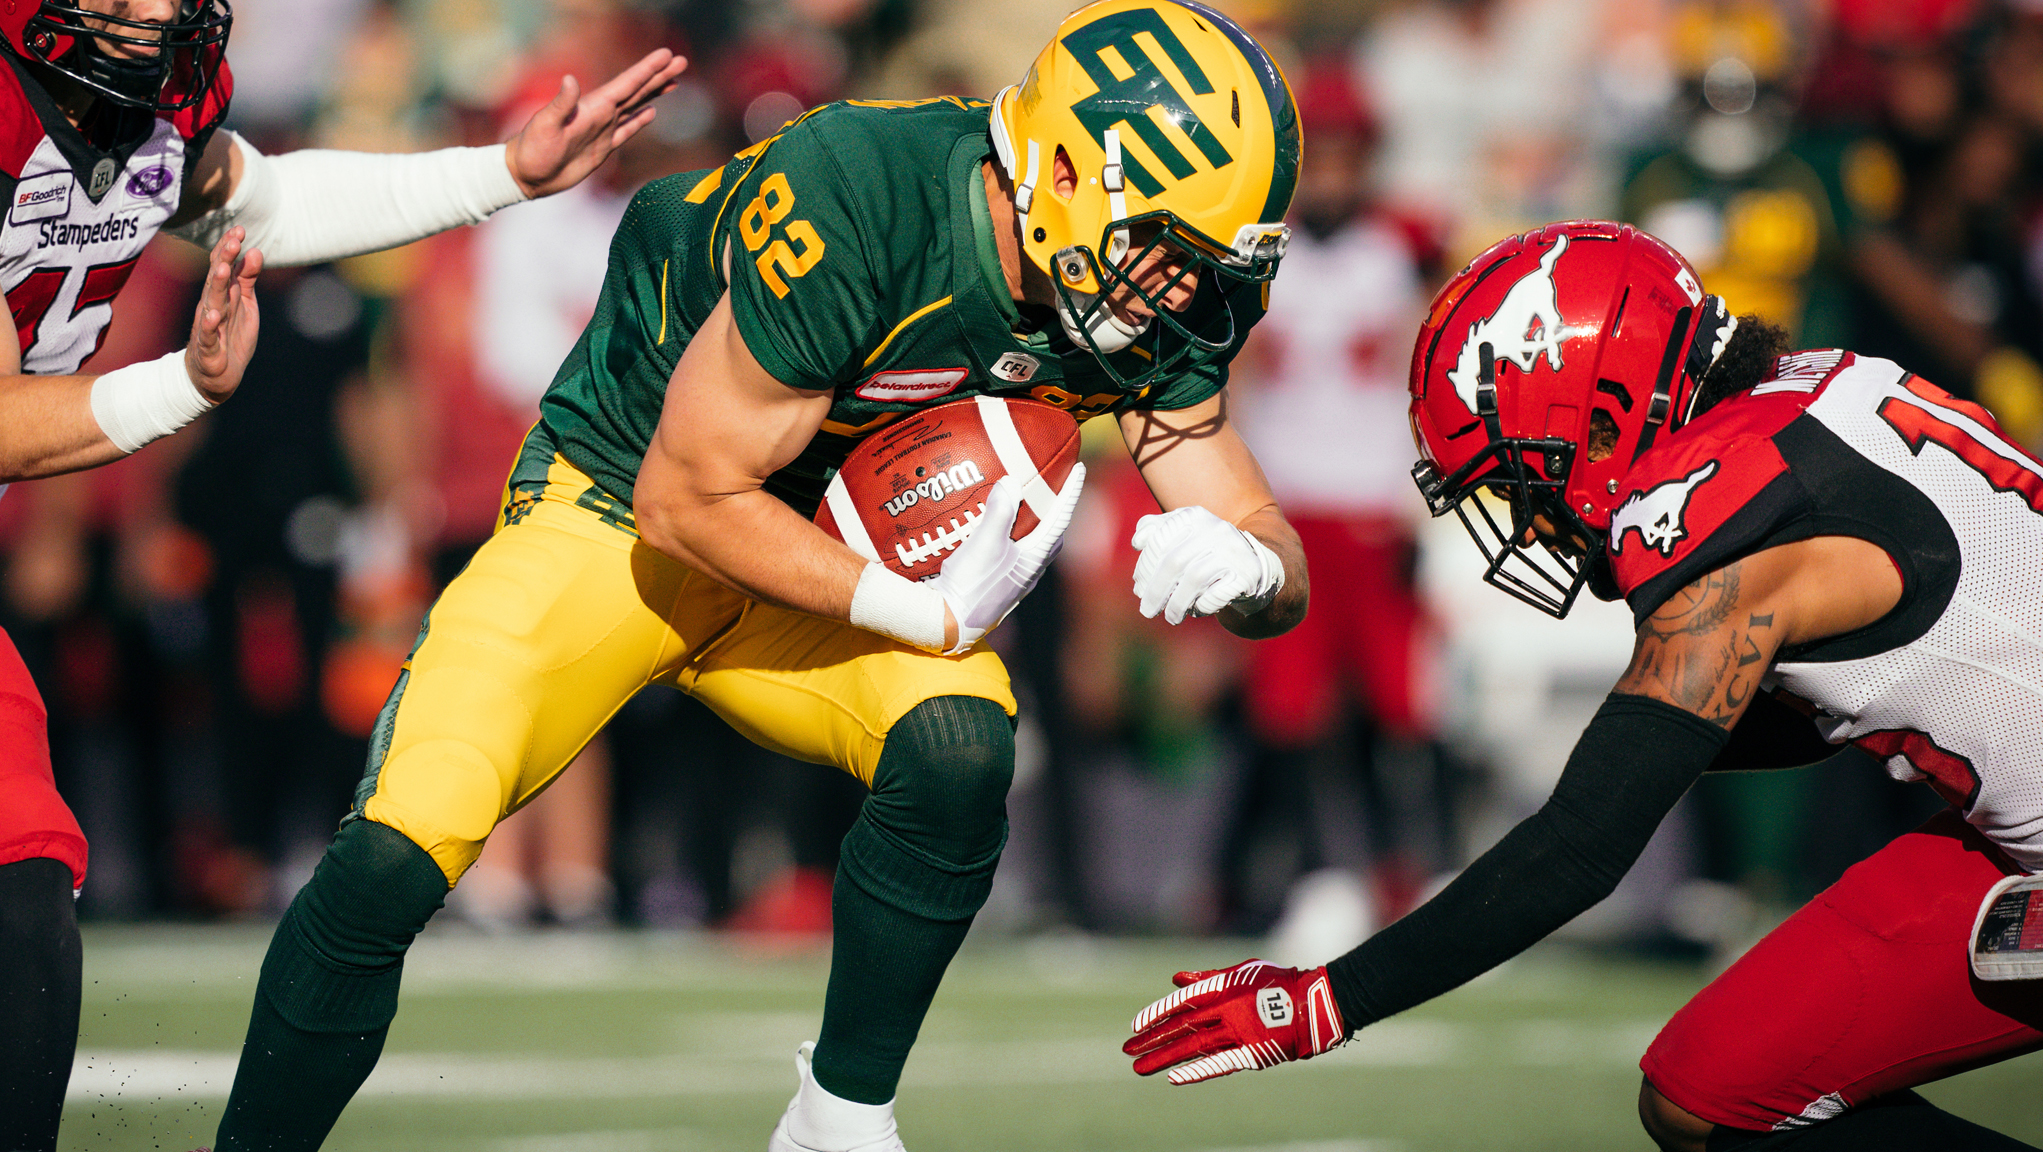 Berg vs. Ferg: Is the crossover path easier? - CFL.ca